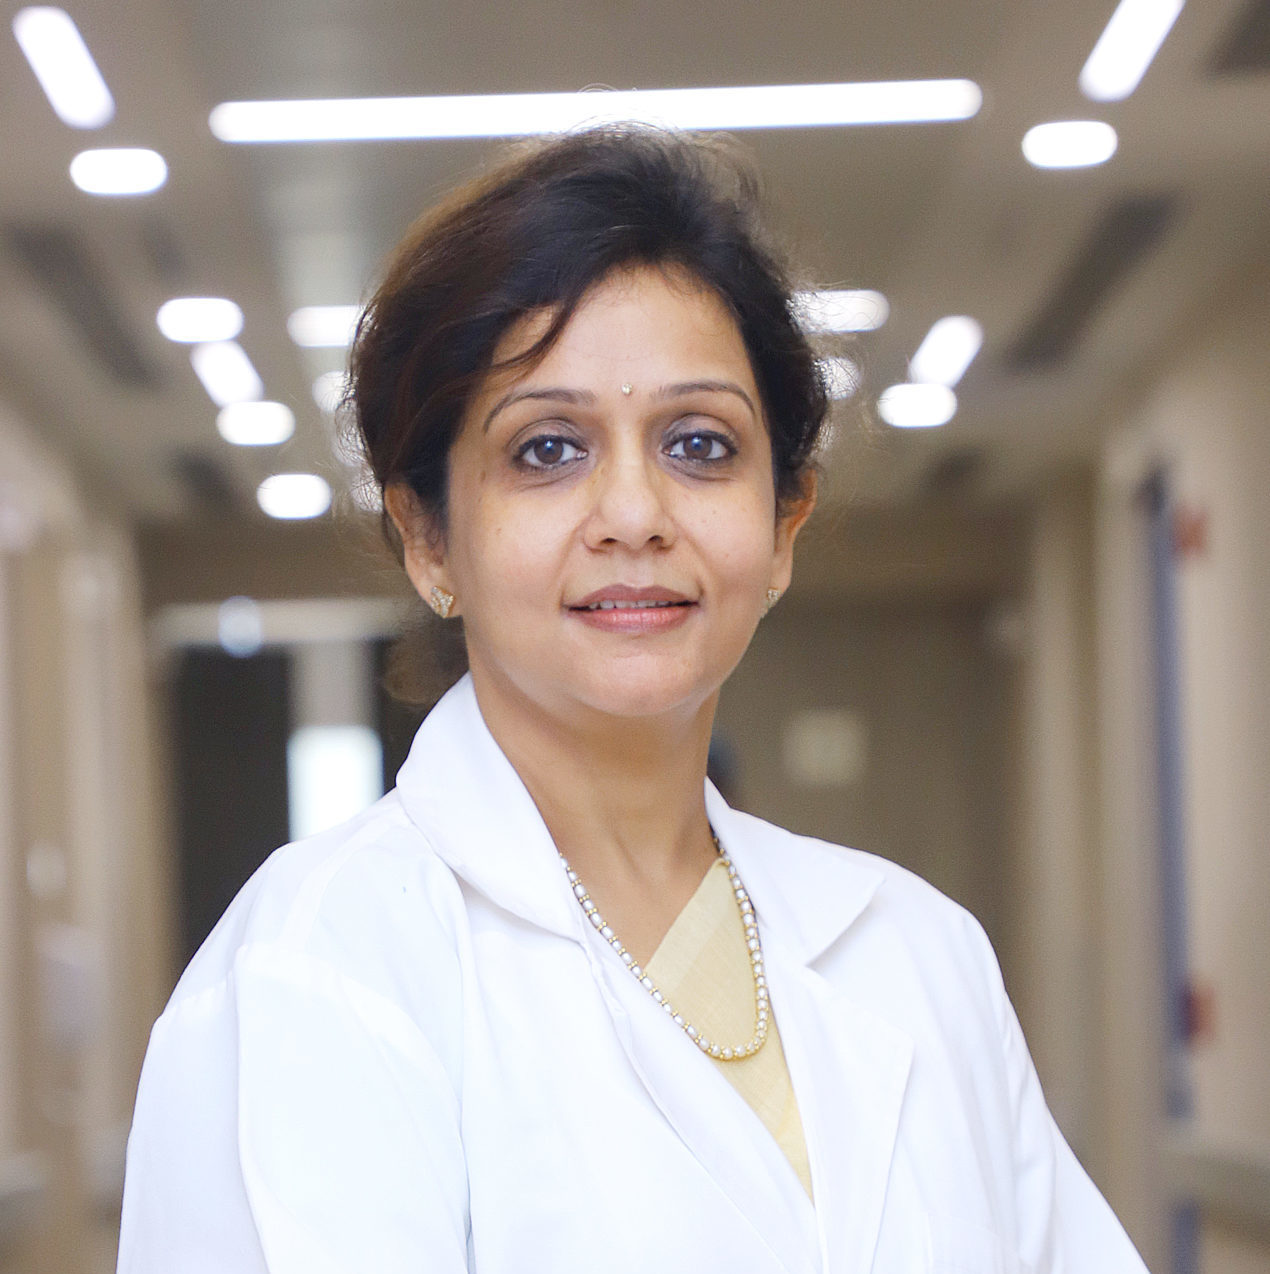 Dr. Deepika Aggarwal, Best Gynecologist in Gurgaon,Obstetrician in Gurgaon